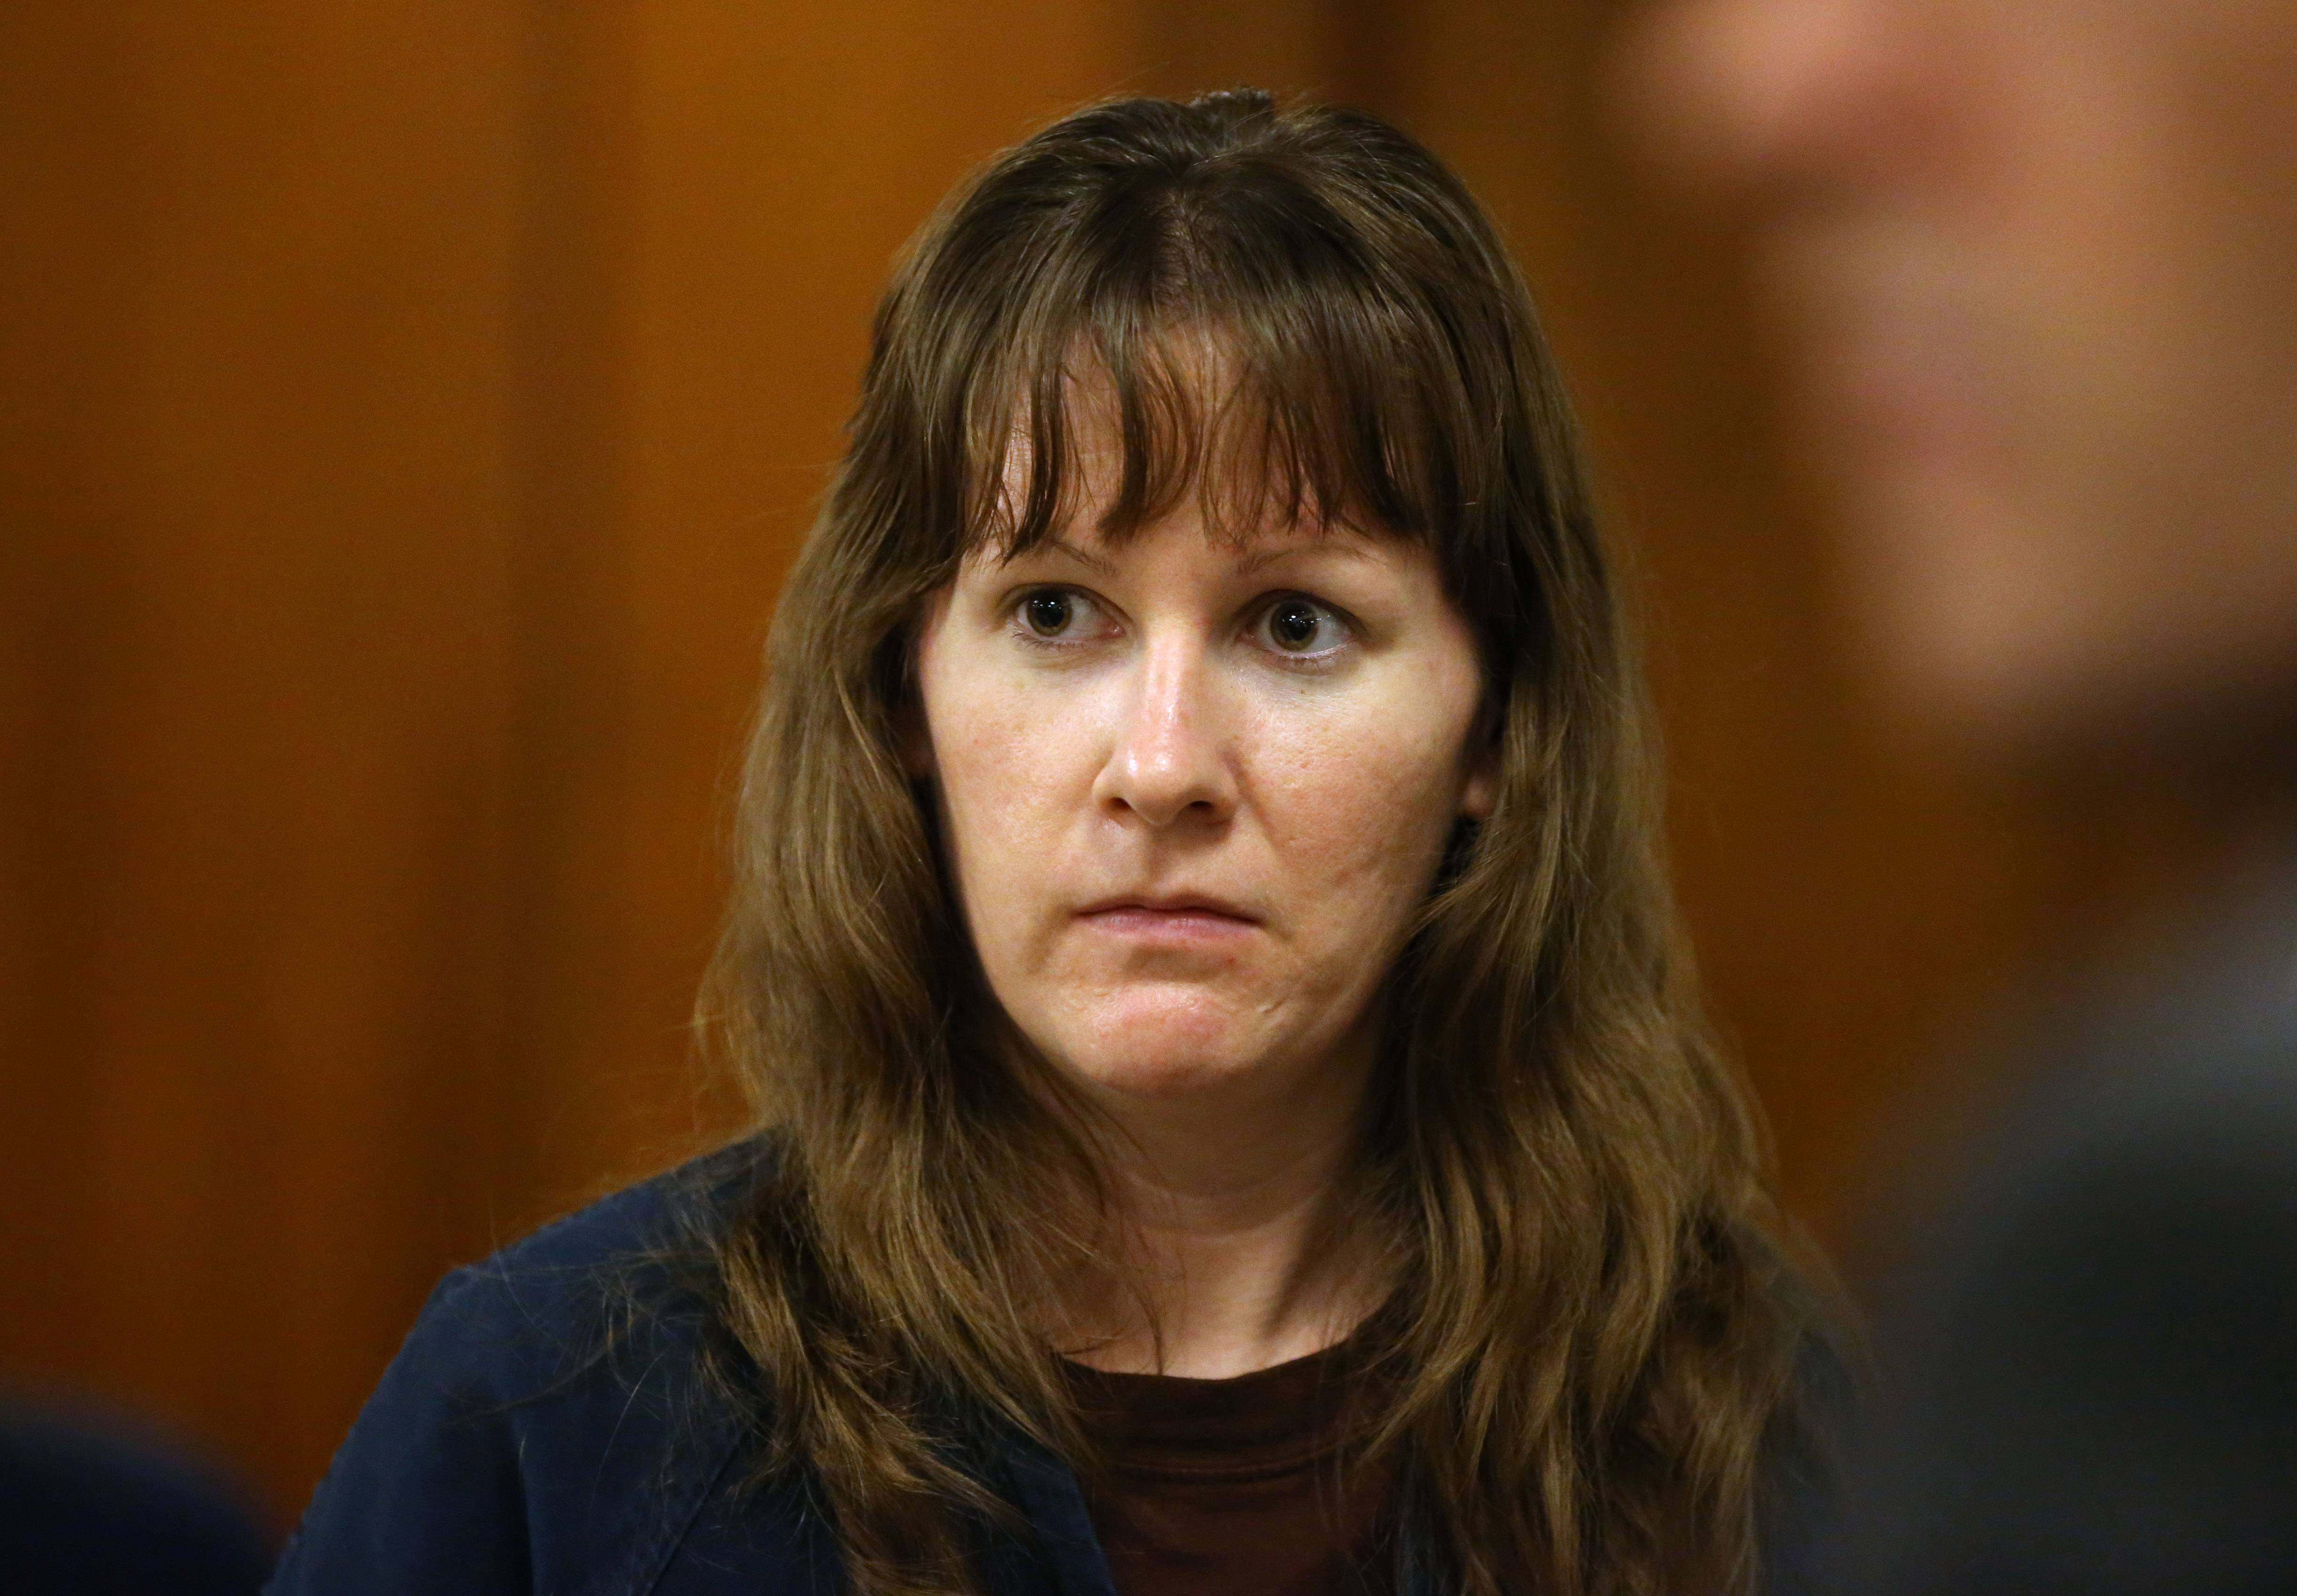 Melissa Calusinski's bid to overturn her murder conviction for the death of a 16-month-old boy at a Lincolnshire day-care center may have been dealt a blow by this week's stunning indictment of former Lake County Coroner Thomas Rudd. He has been a longtime champion of her cause.